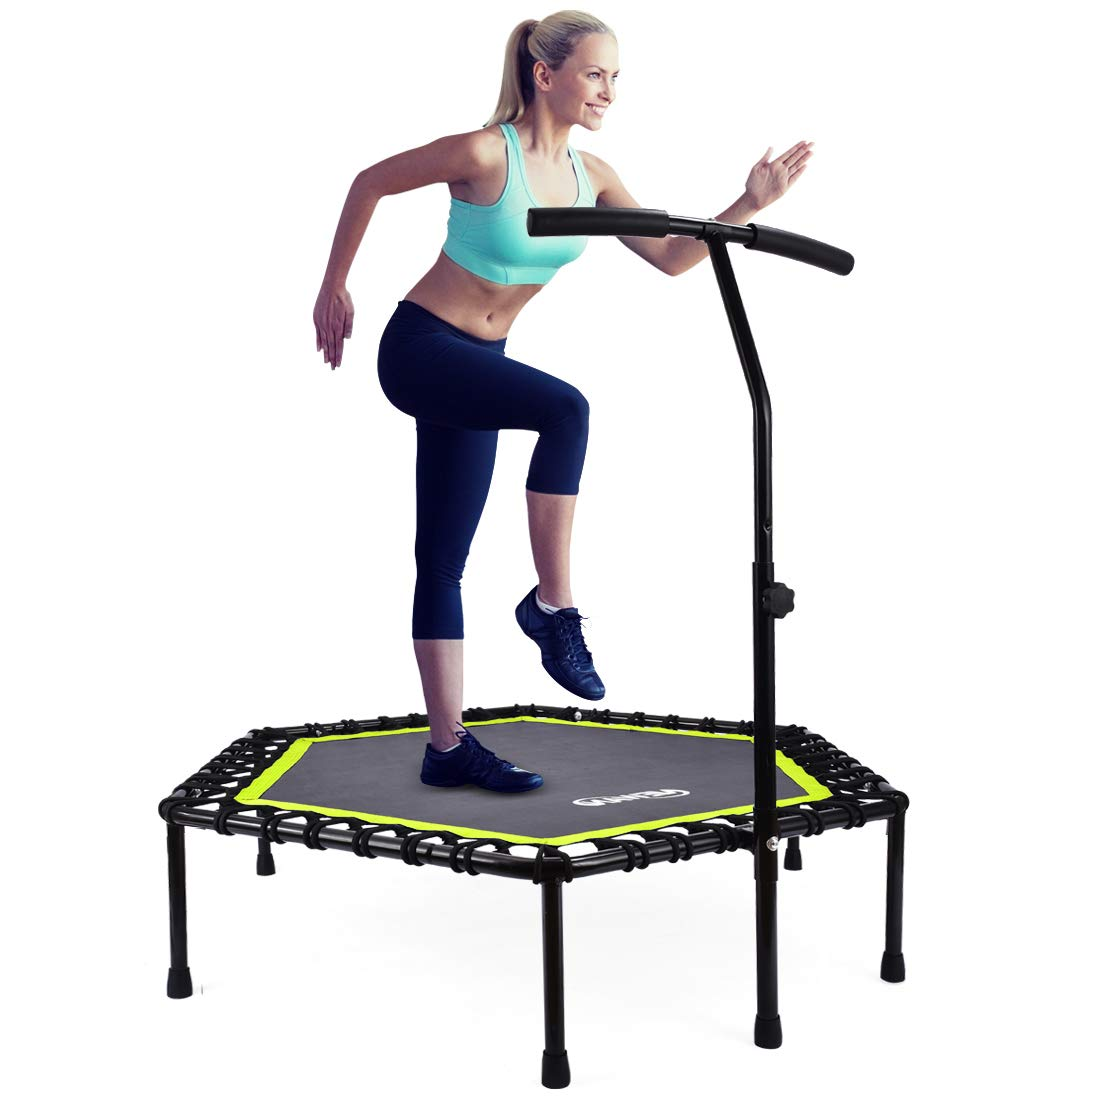 Newan Trampoline, 48'' Mini Trampoline for Adjustable Handrail, Fitness Rebounder Trampoline Indoor for Adults, Best Home Exercise - Workout Cardio Fitness Trainer, Silent and Safe Bungee Rope System